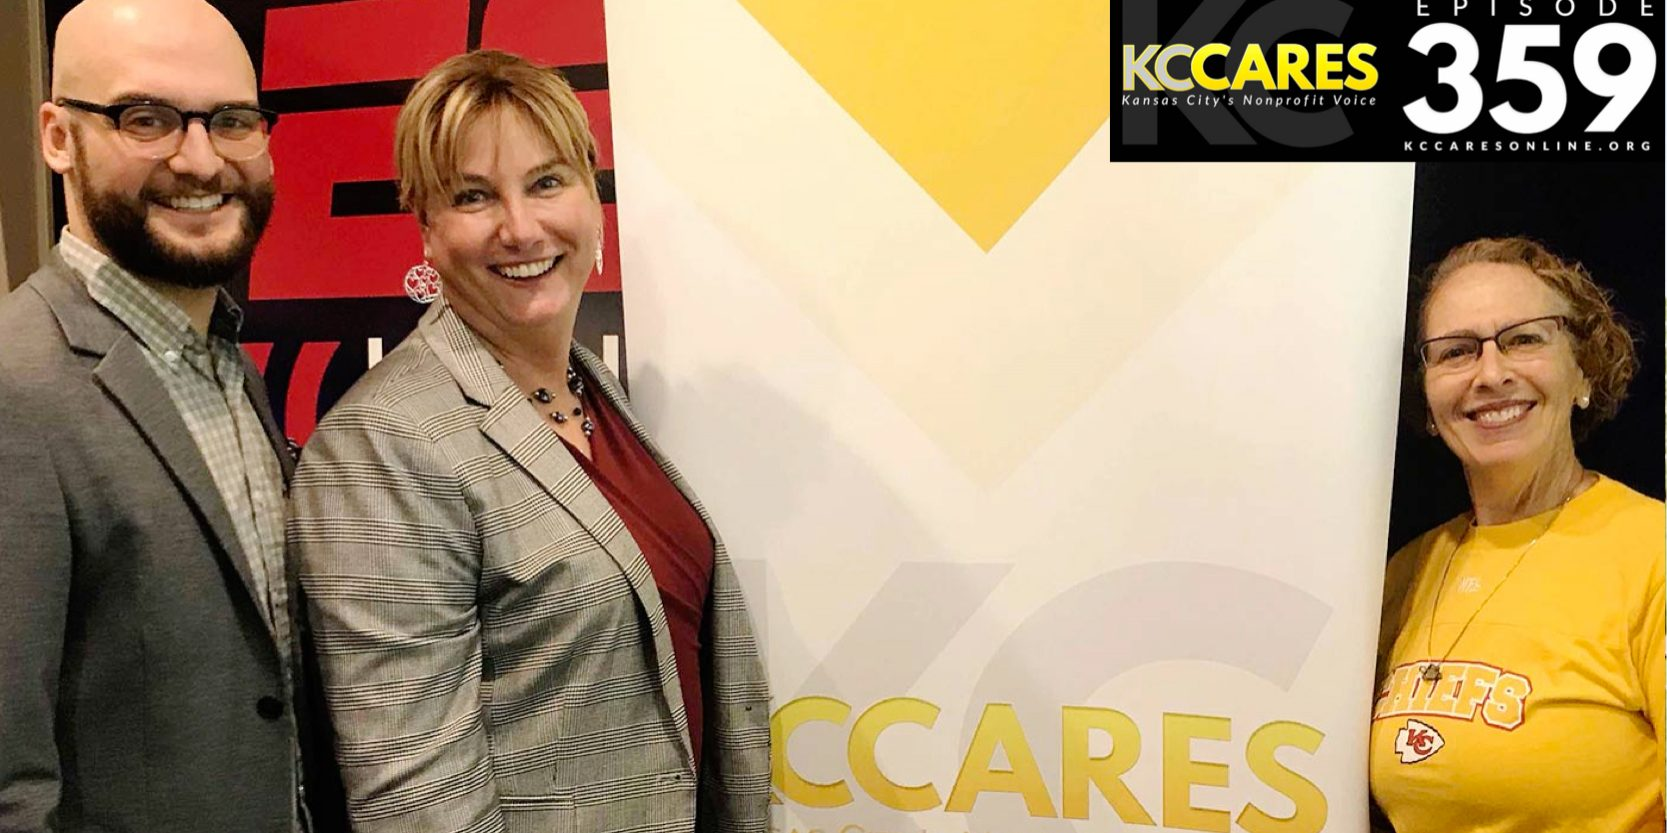 midamerica_lgbt-community-kccares_podcast-nov19